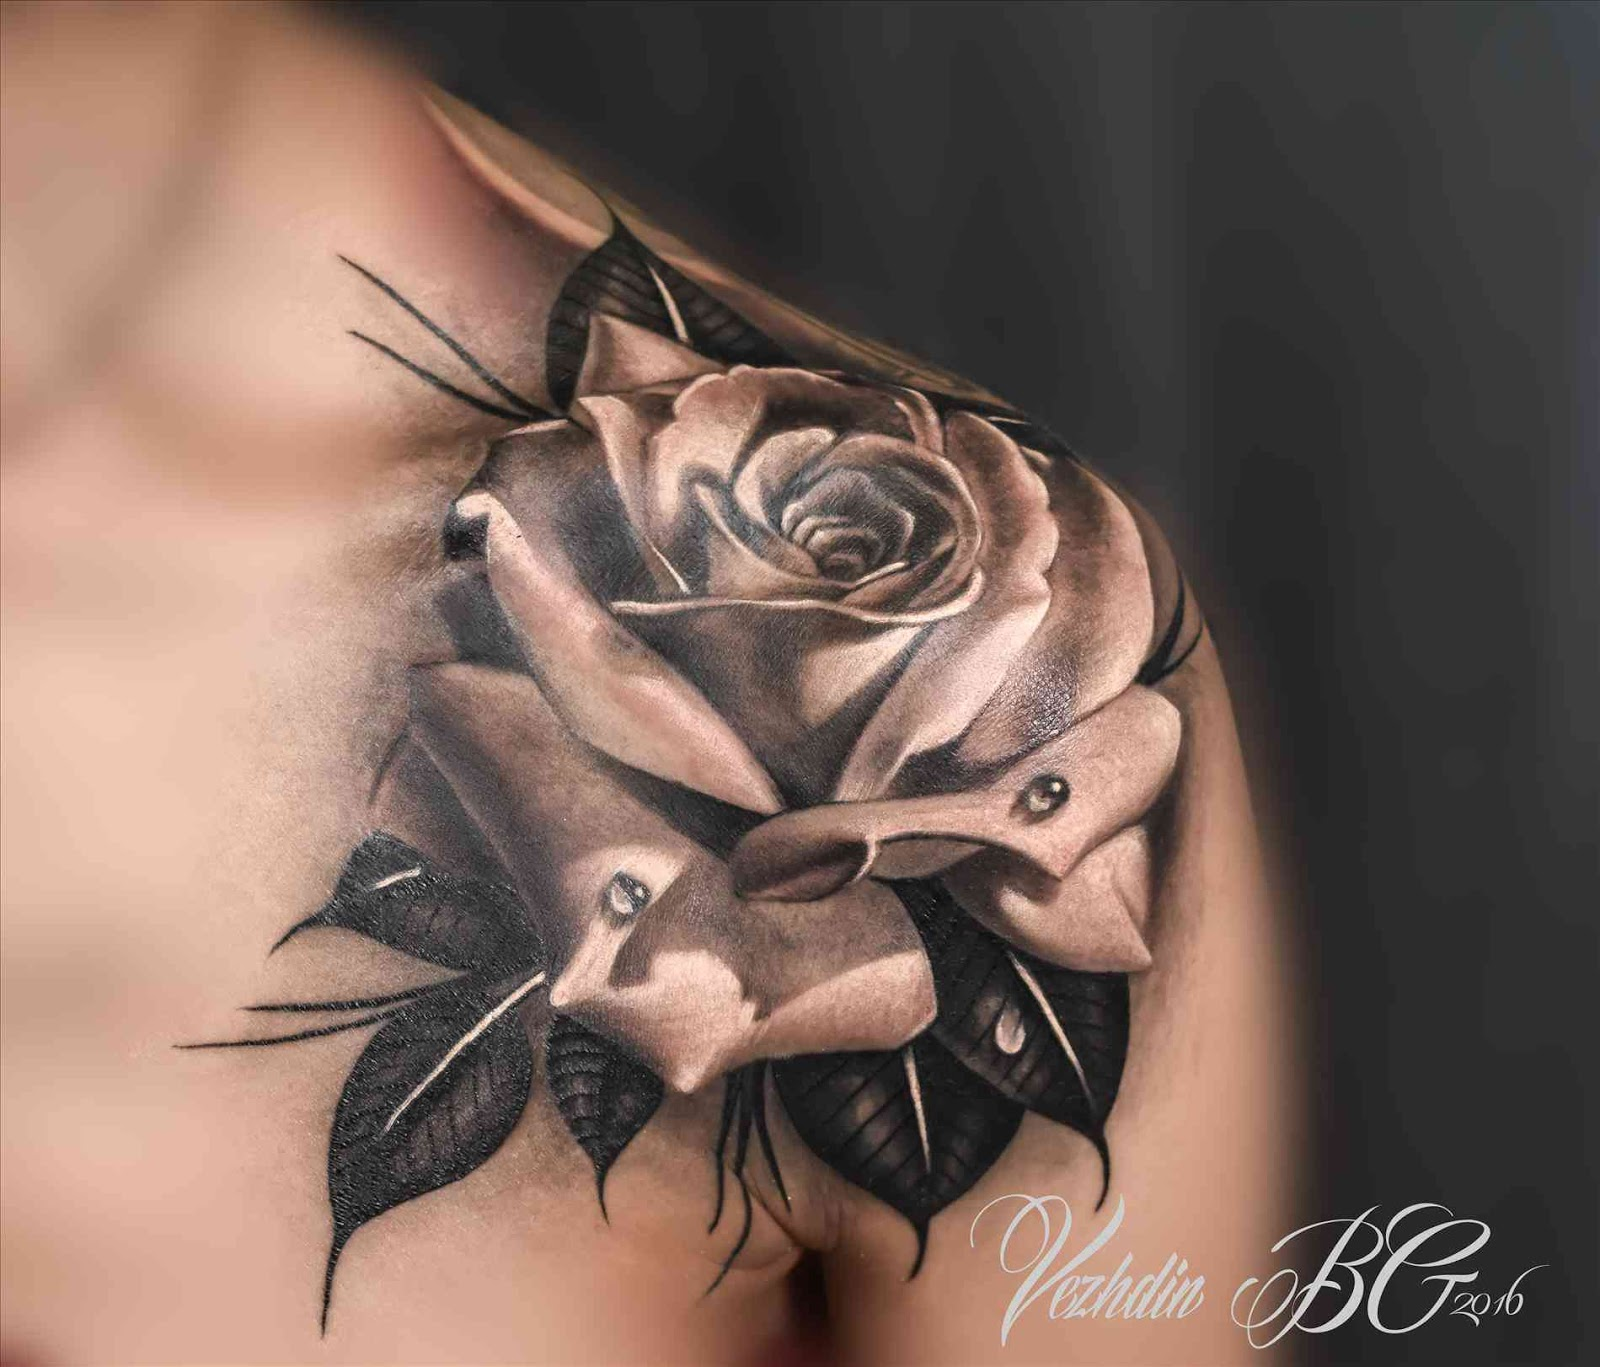 Mytattooland.com: Black Rose tattoos